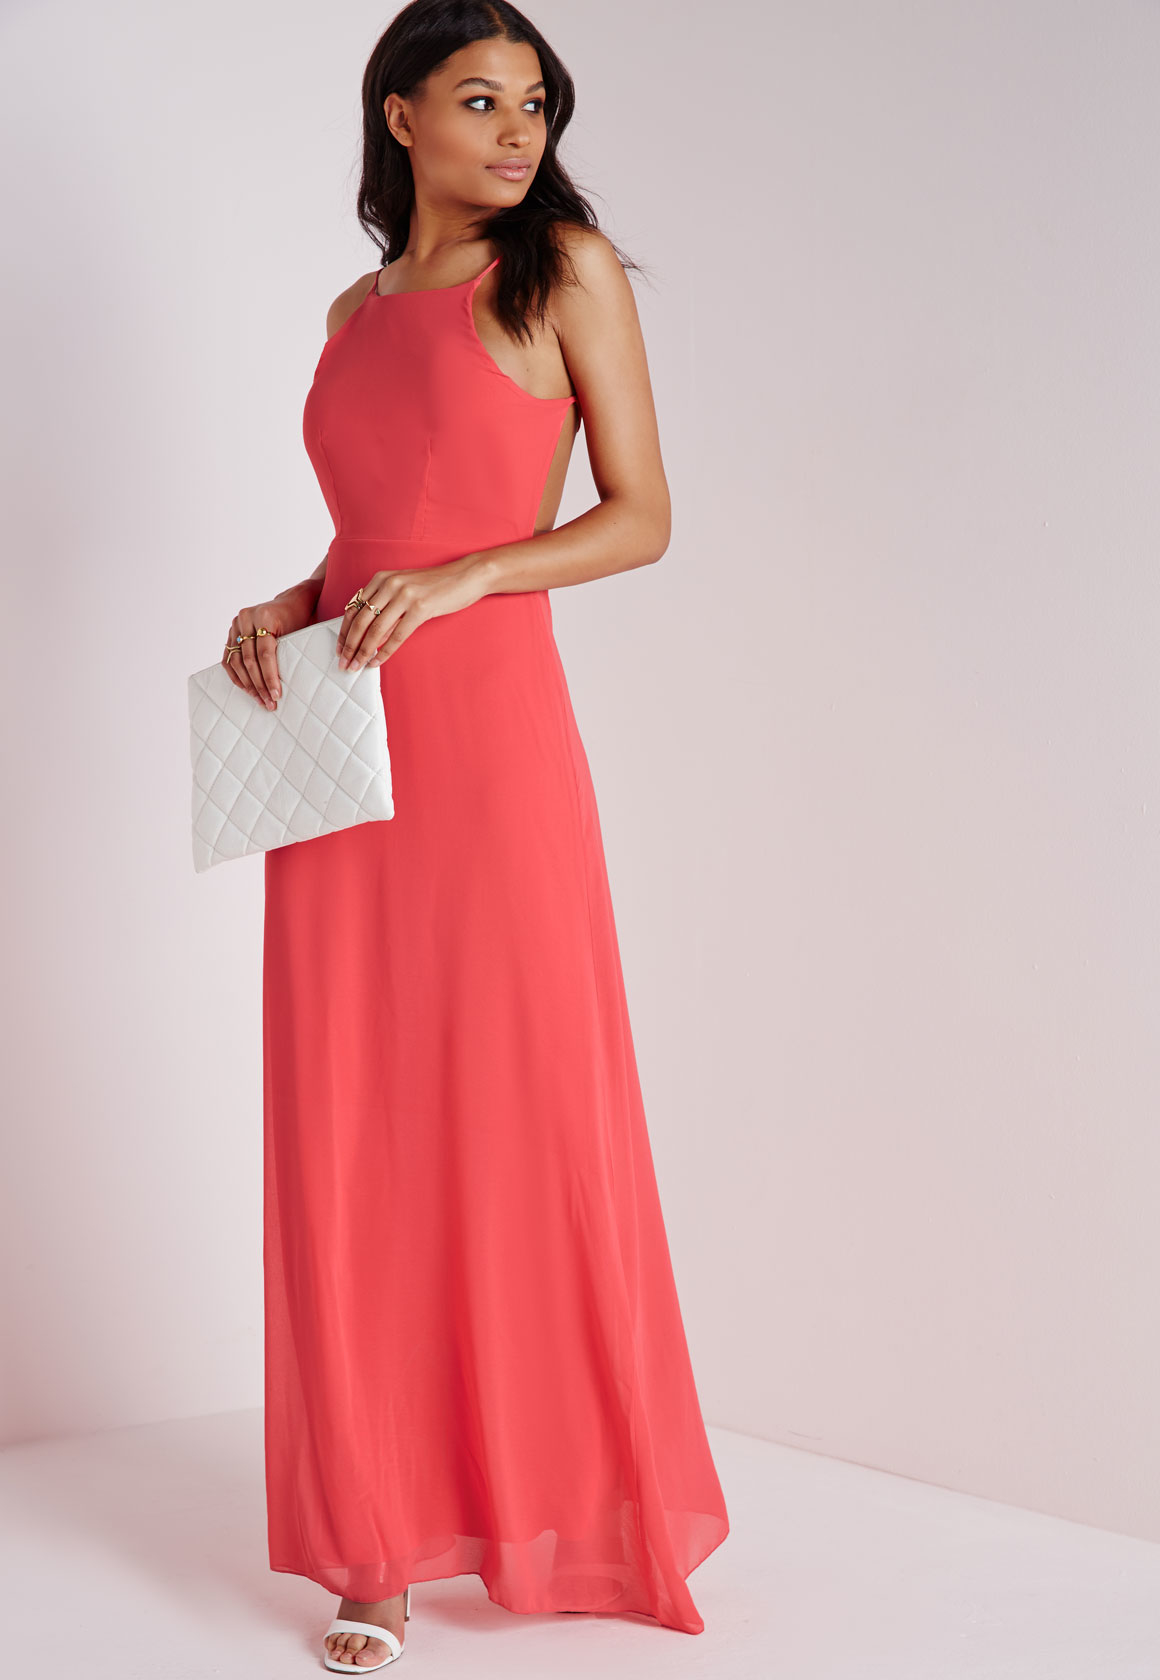 Lyst - Missguided Strappy Back Maxi Dress Coral in Pink